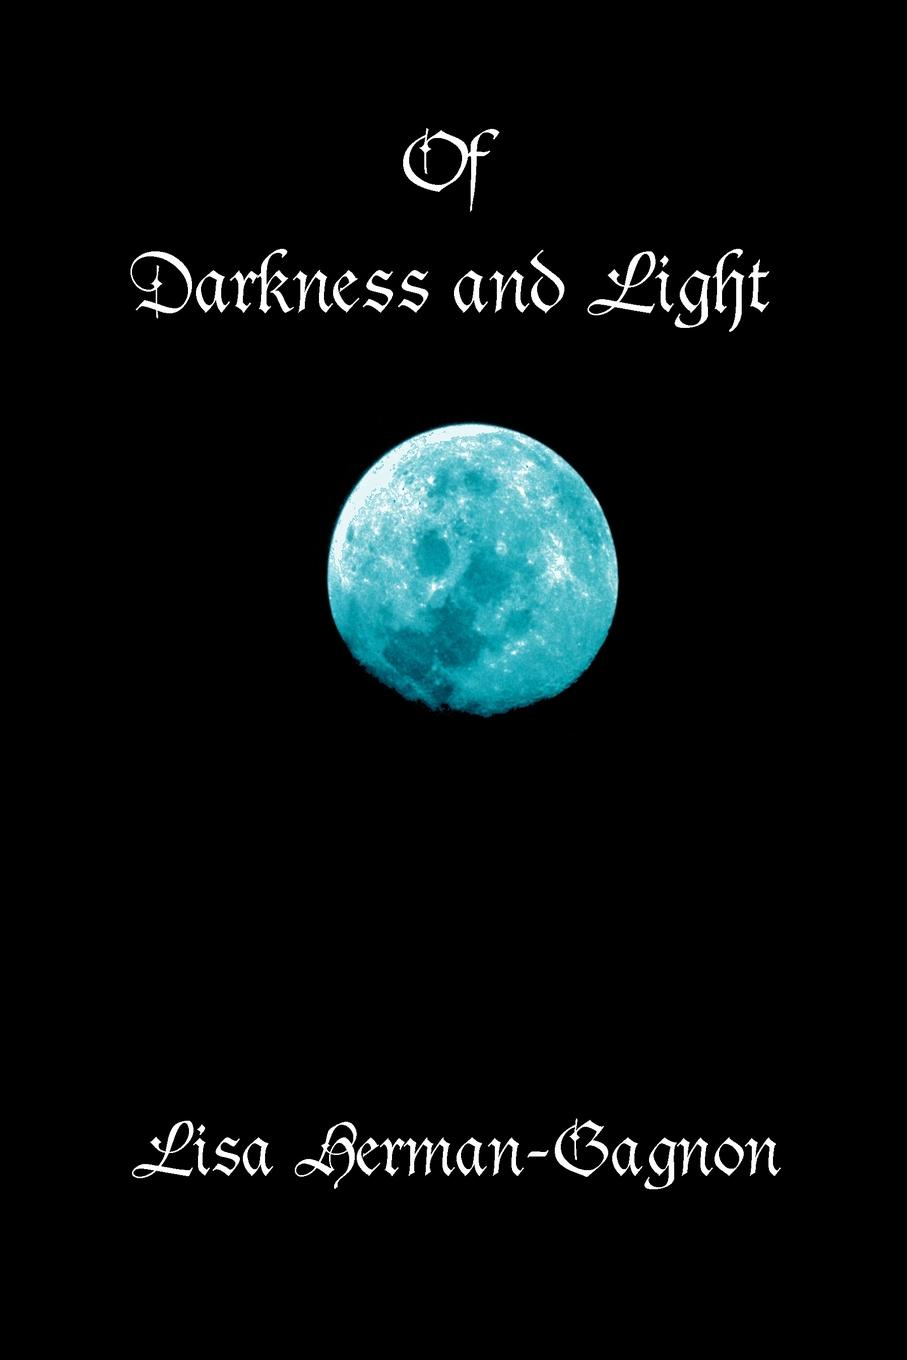 Of Darkness and Light. Penned Poetry and Prose, Beings Solid and Those Not Seen. from the Vampire to Angels and of This Life In-Between. Lisa Herman-Gagon